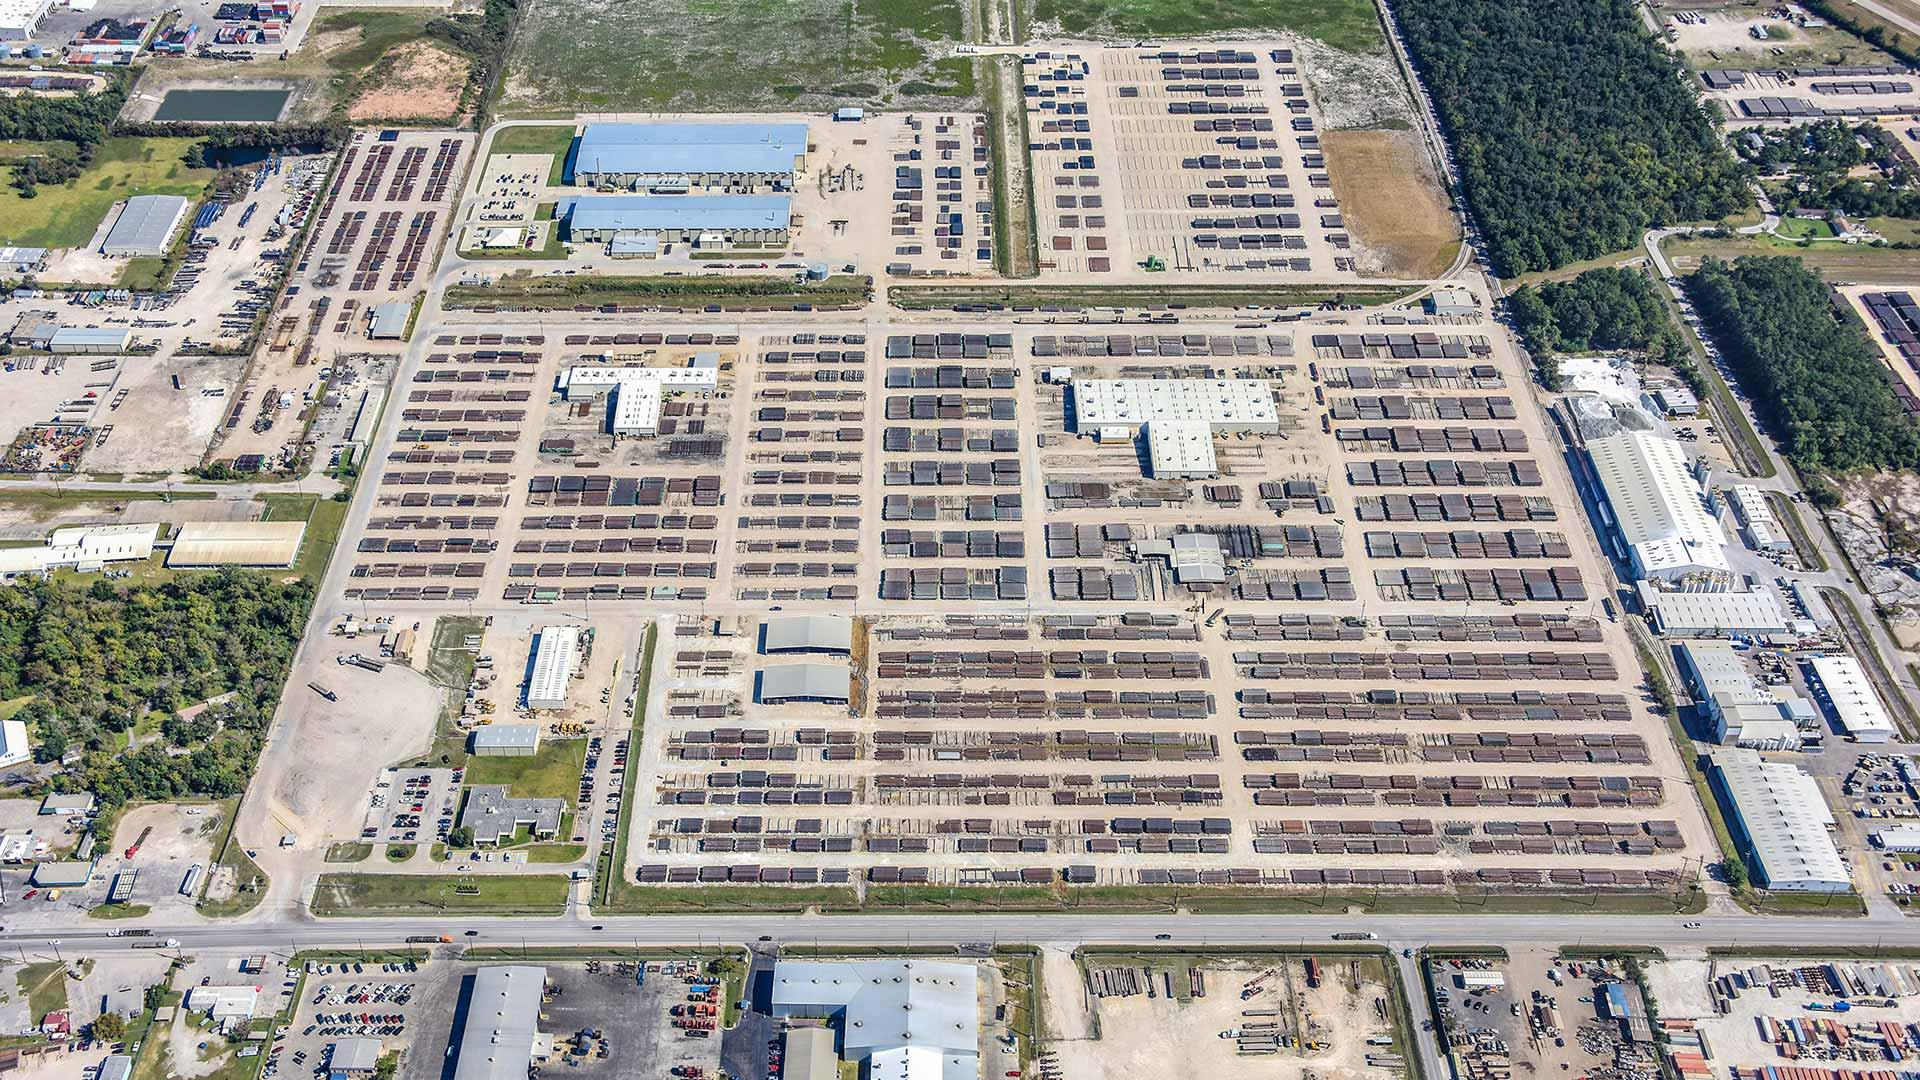 Aerial view of Tuboscope yard